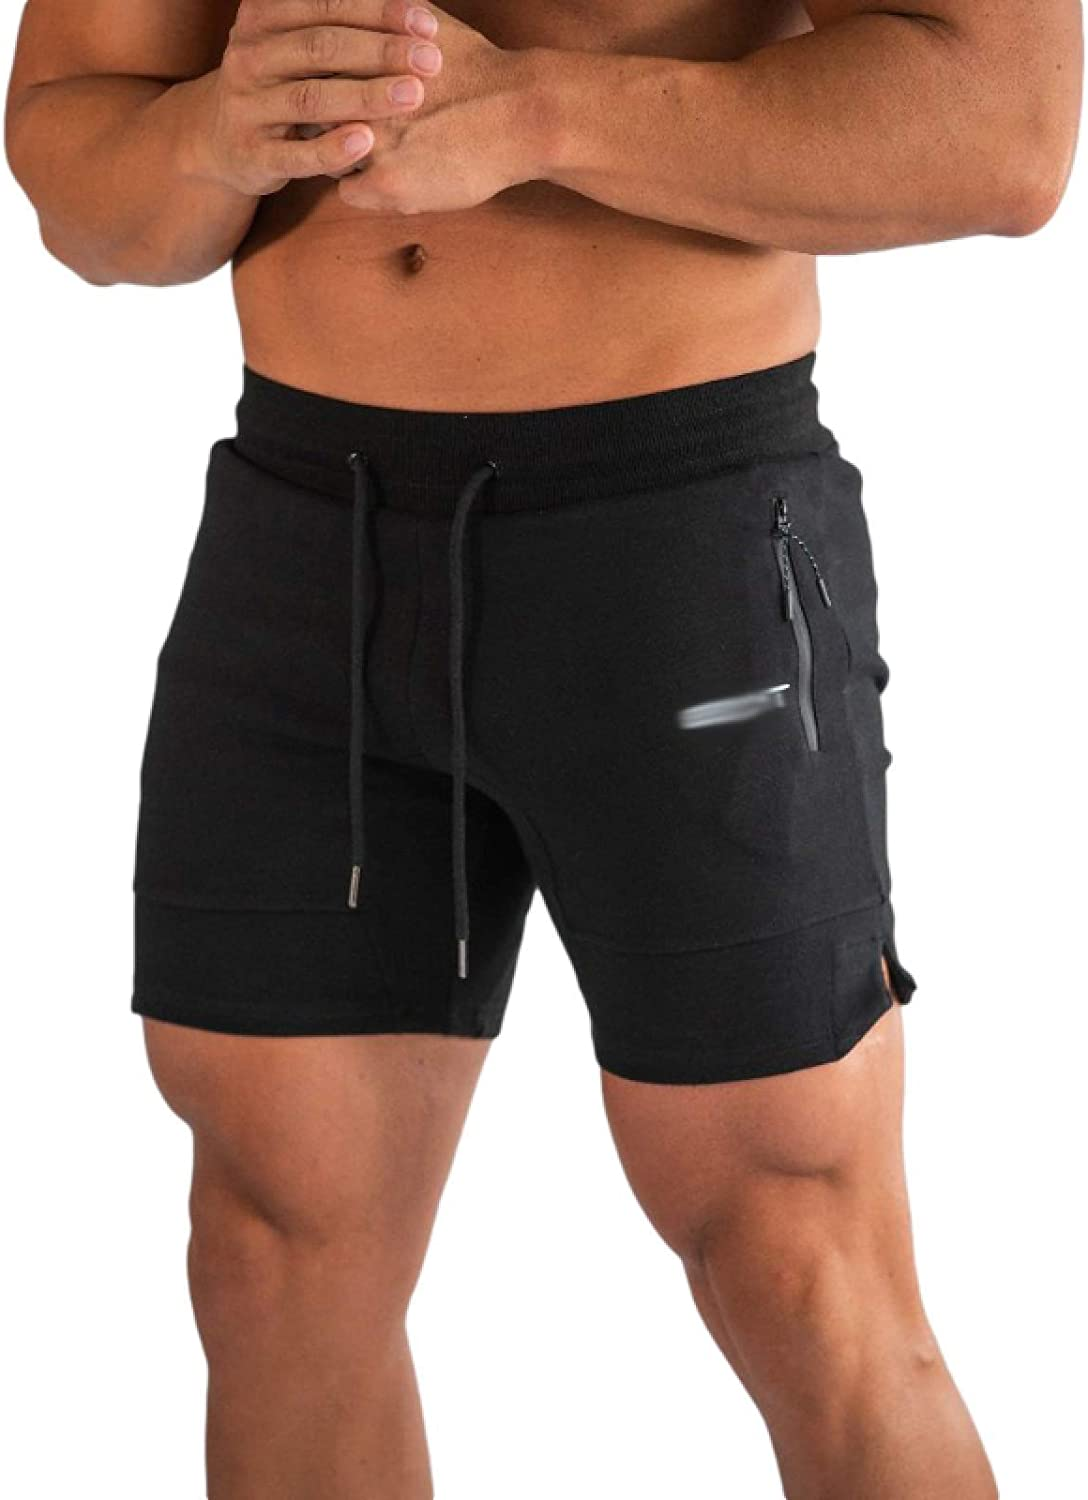 Jubaton Men's Gym Shorts with Complete Ventilation, Versatile Sports Shorts for